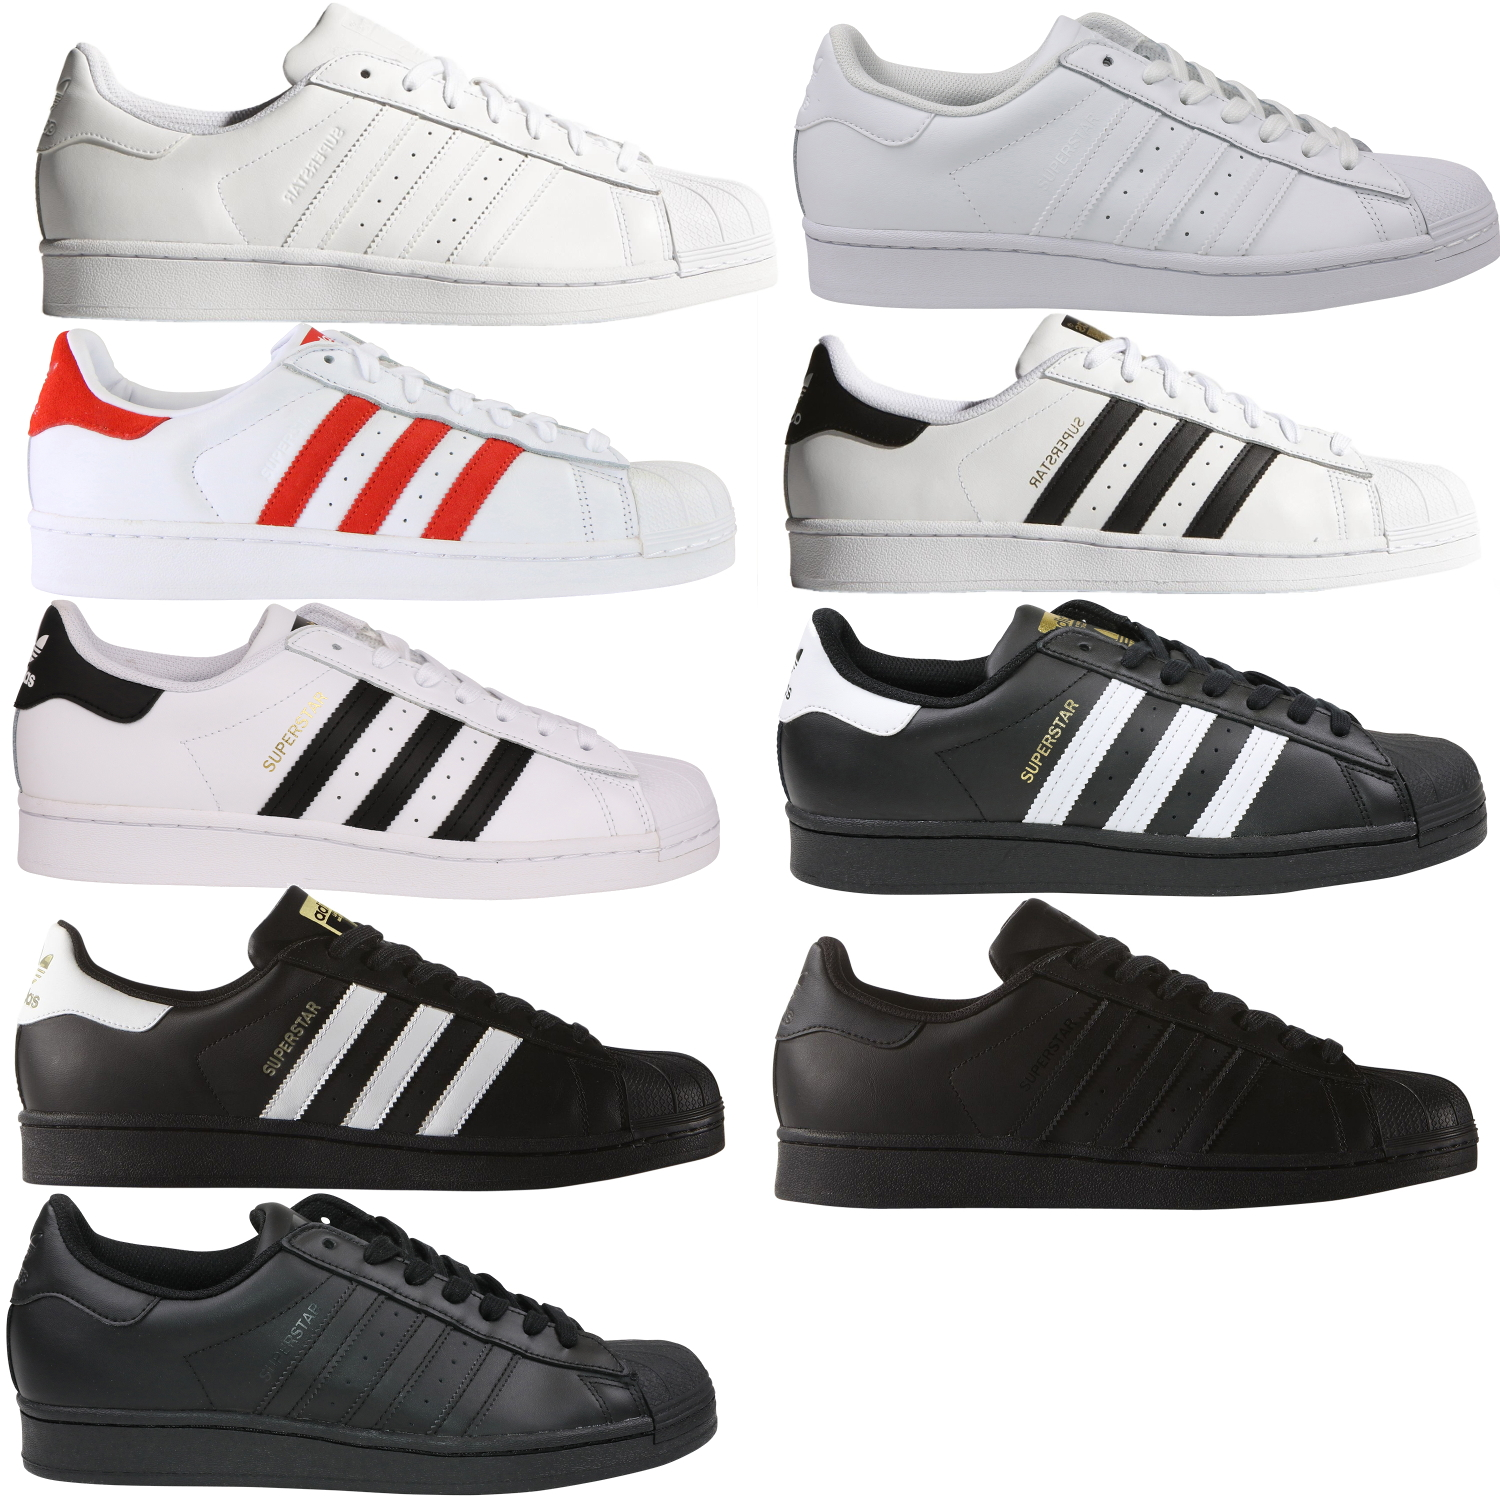 adidas superstars in allen farben wj. Black Bedroom Furniture Sets. Home Design Ideas